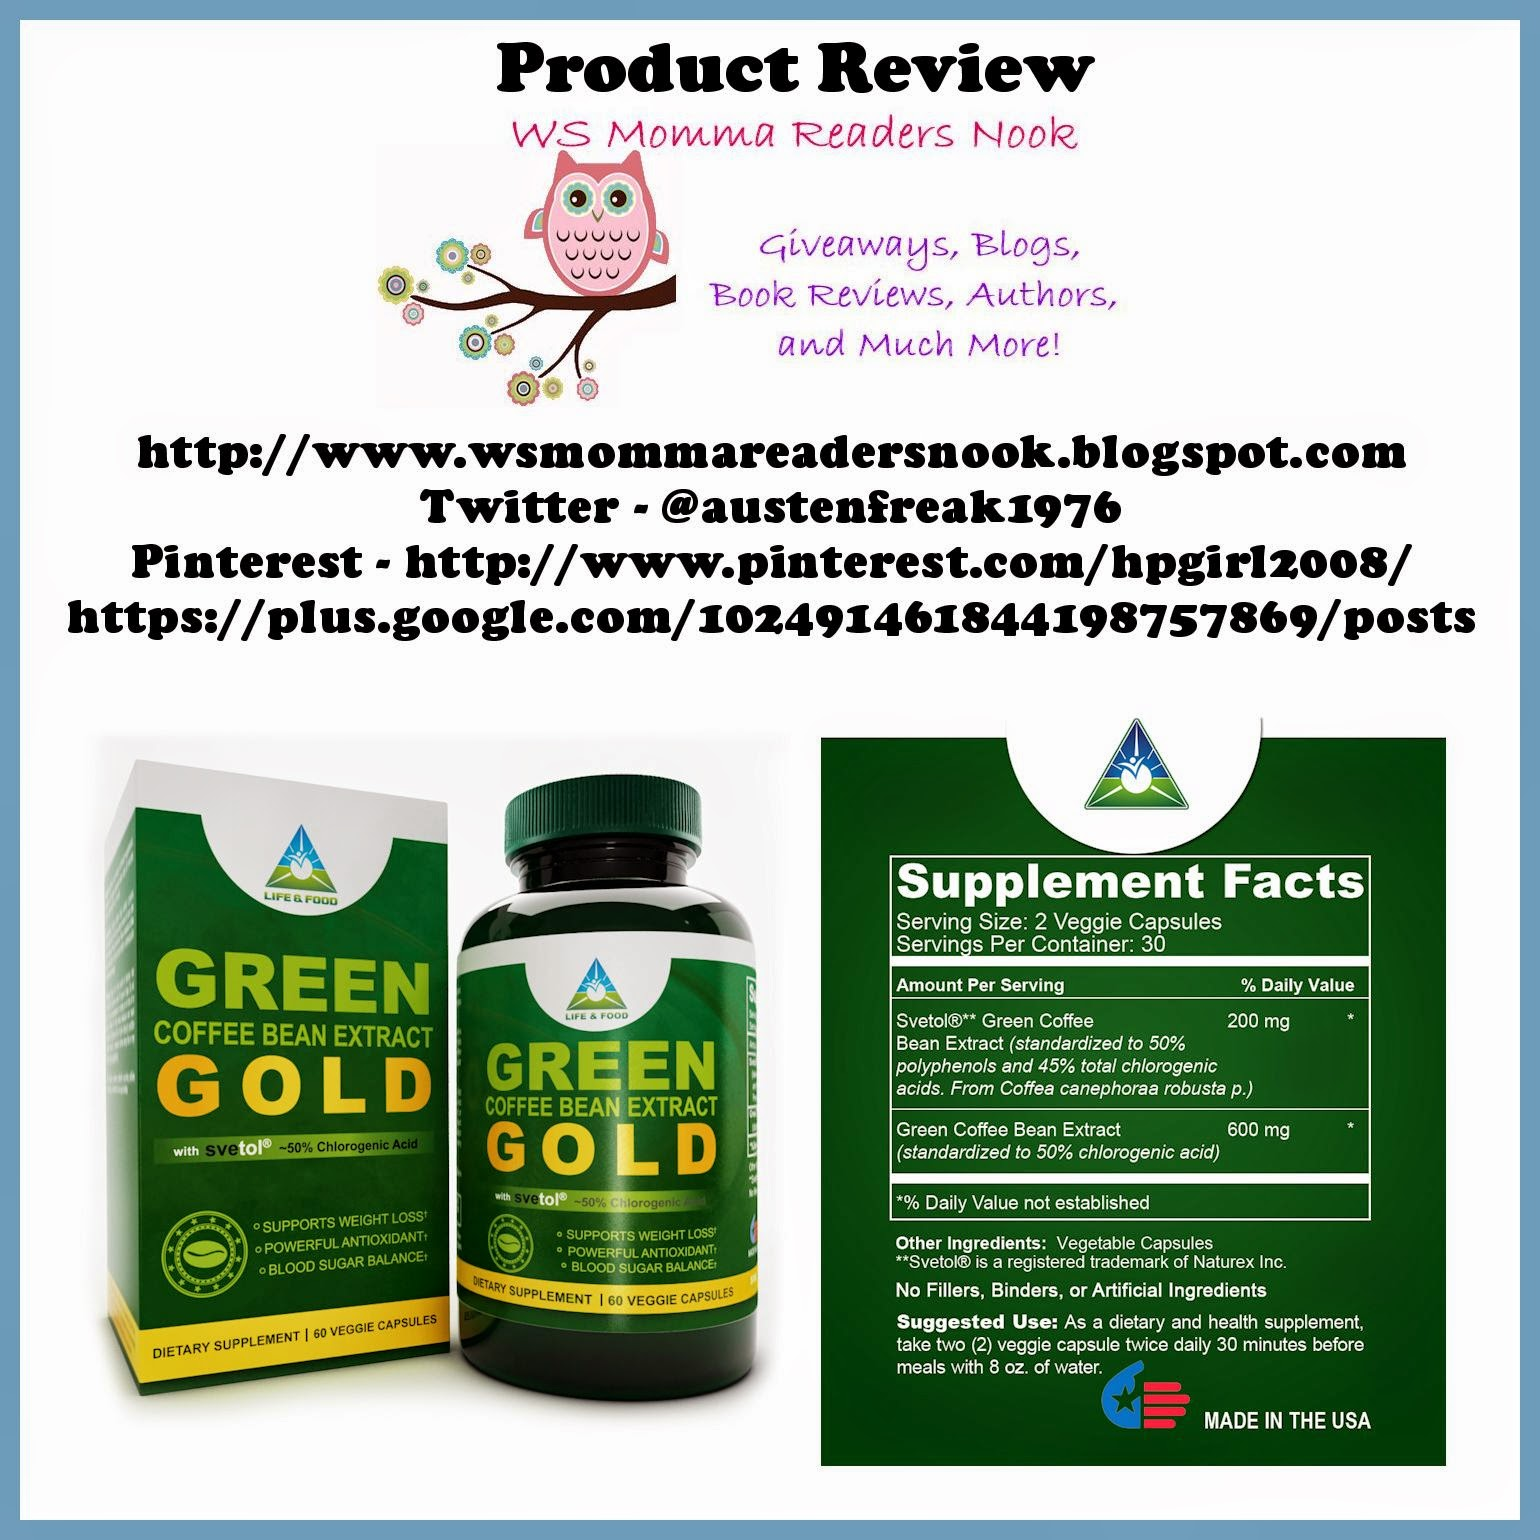 http://www.amazon.com/Green-Coffee-Bean-Extract-GOLD/dp/B008W9RQ30/ref=sr_1_1?ie=UTF8&qid=1415161376&sr=8-1&keywords=life+and+food+green+coffee+bean